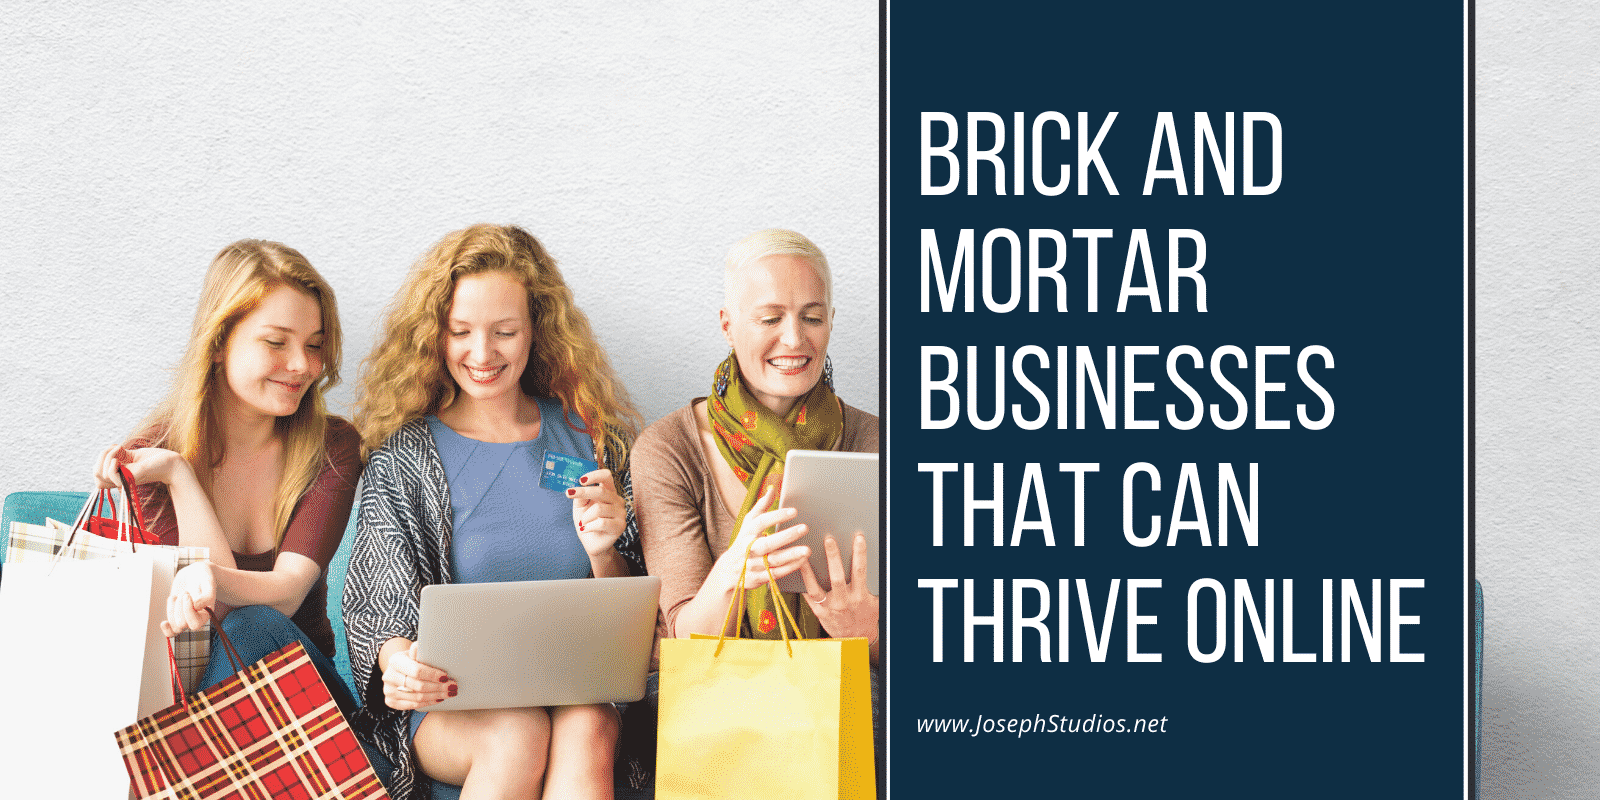 Brick and Mortar Businesses That Can Thrive Online, Brick and Mortar Businesses That Can Thrive Online